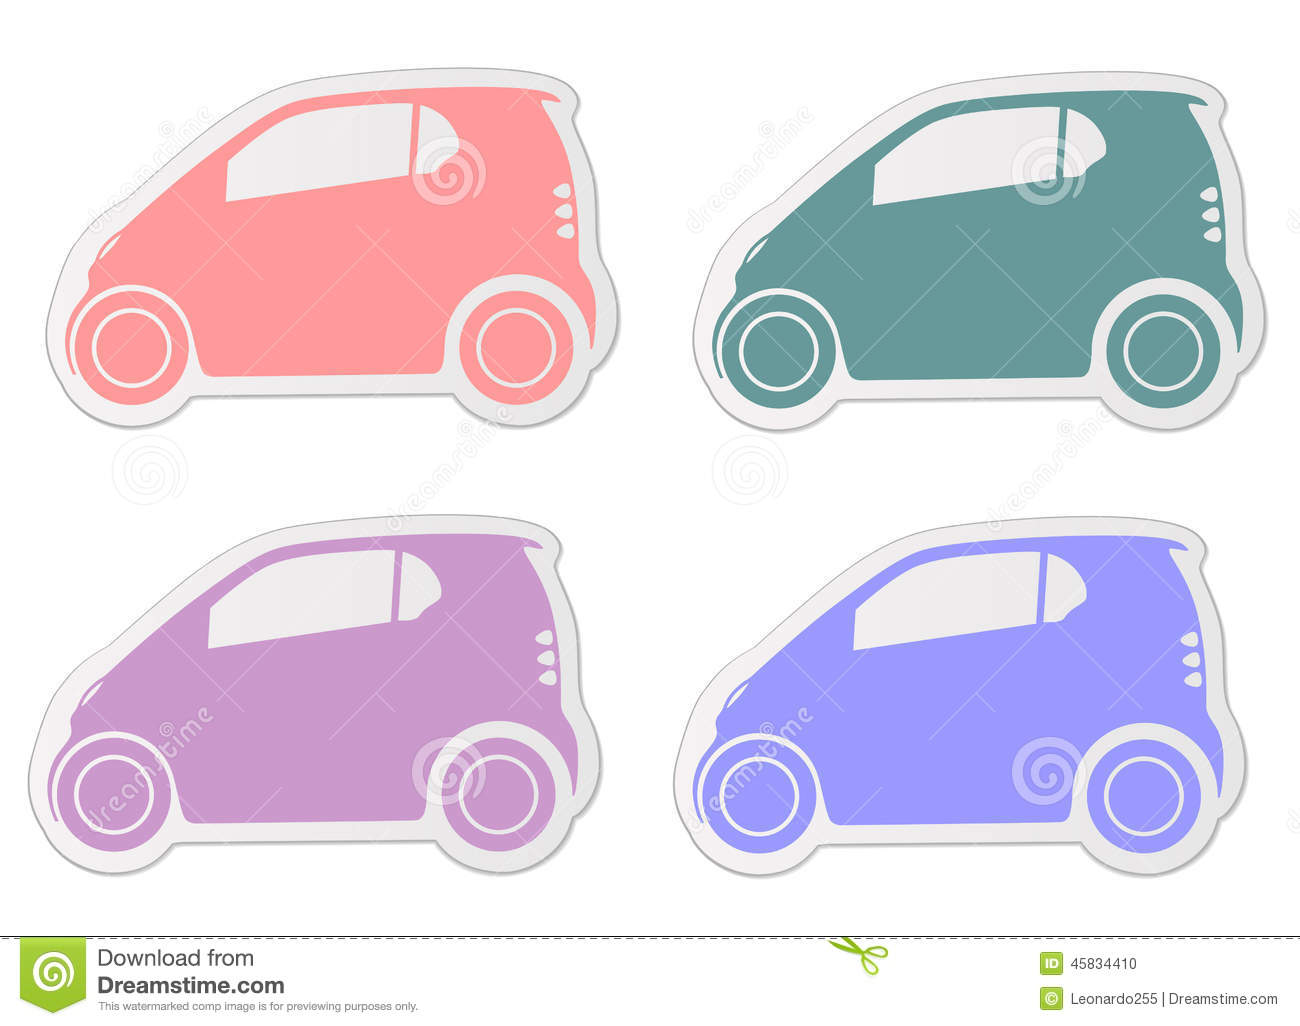 Smart car sticker designs - City Smart Car Sticker